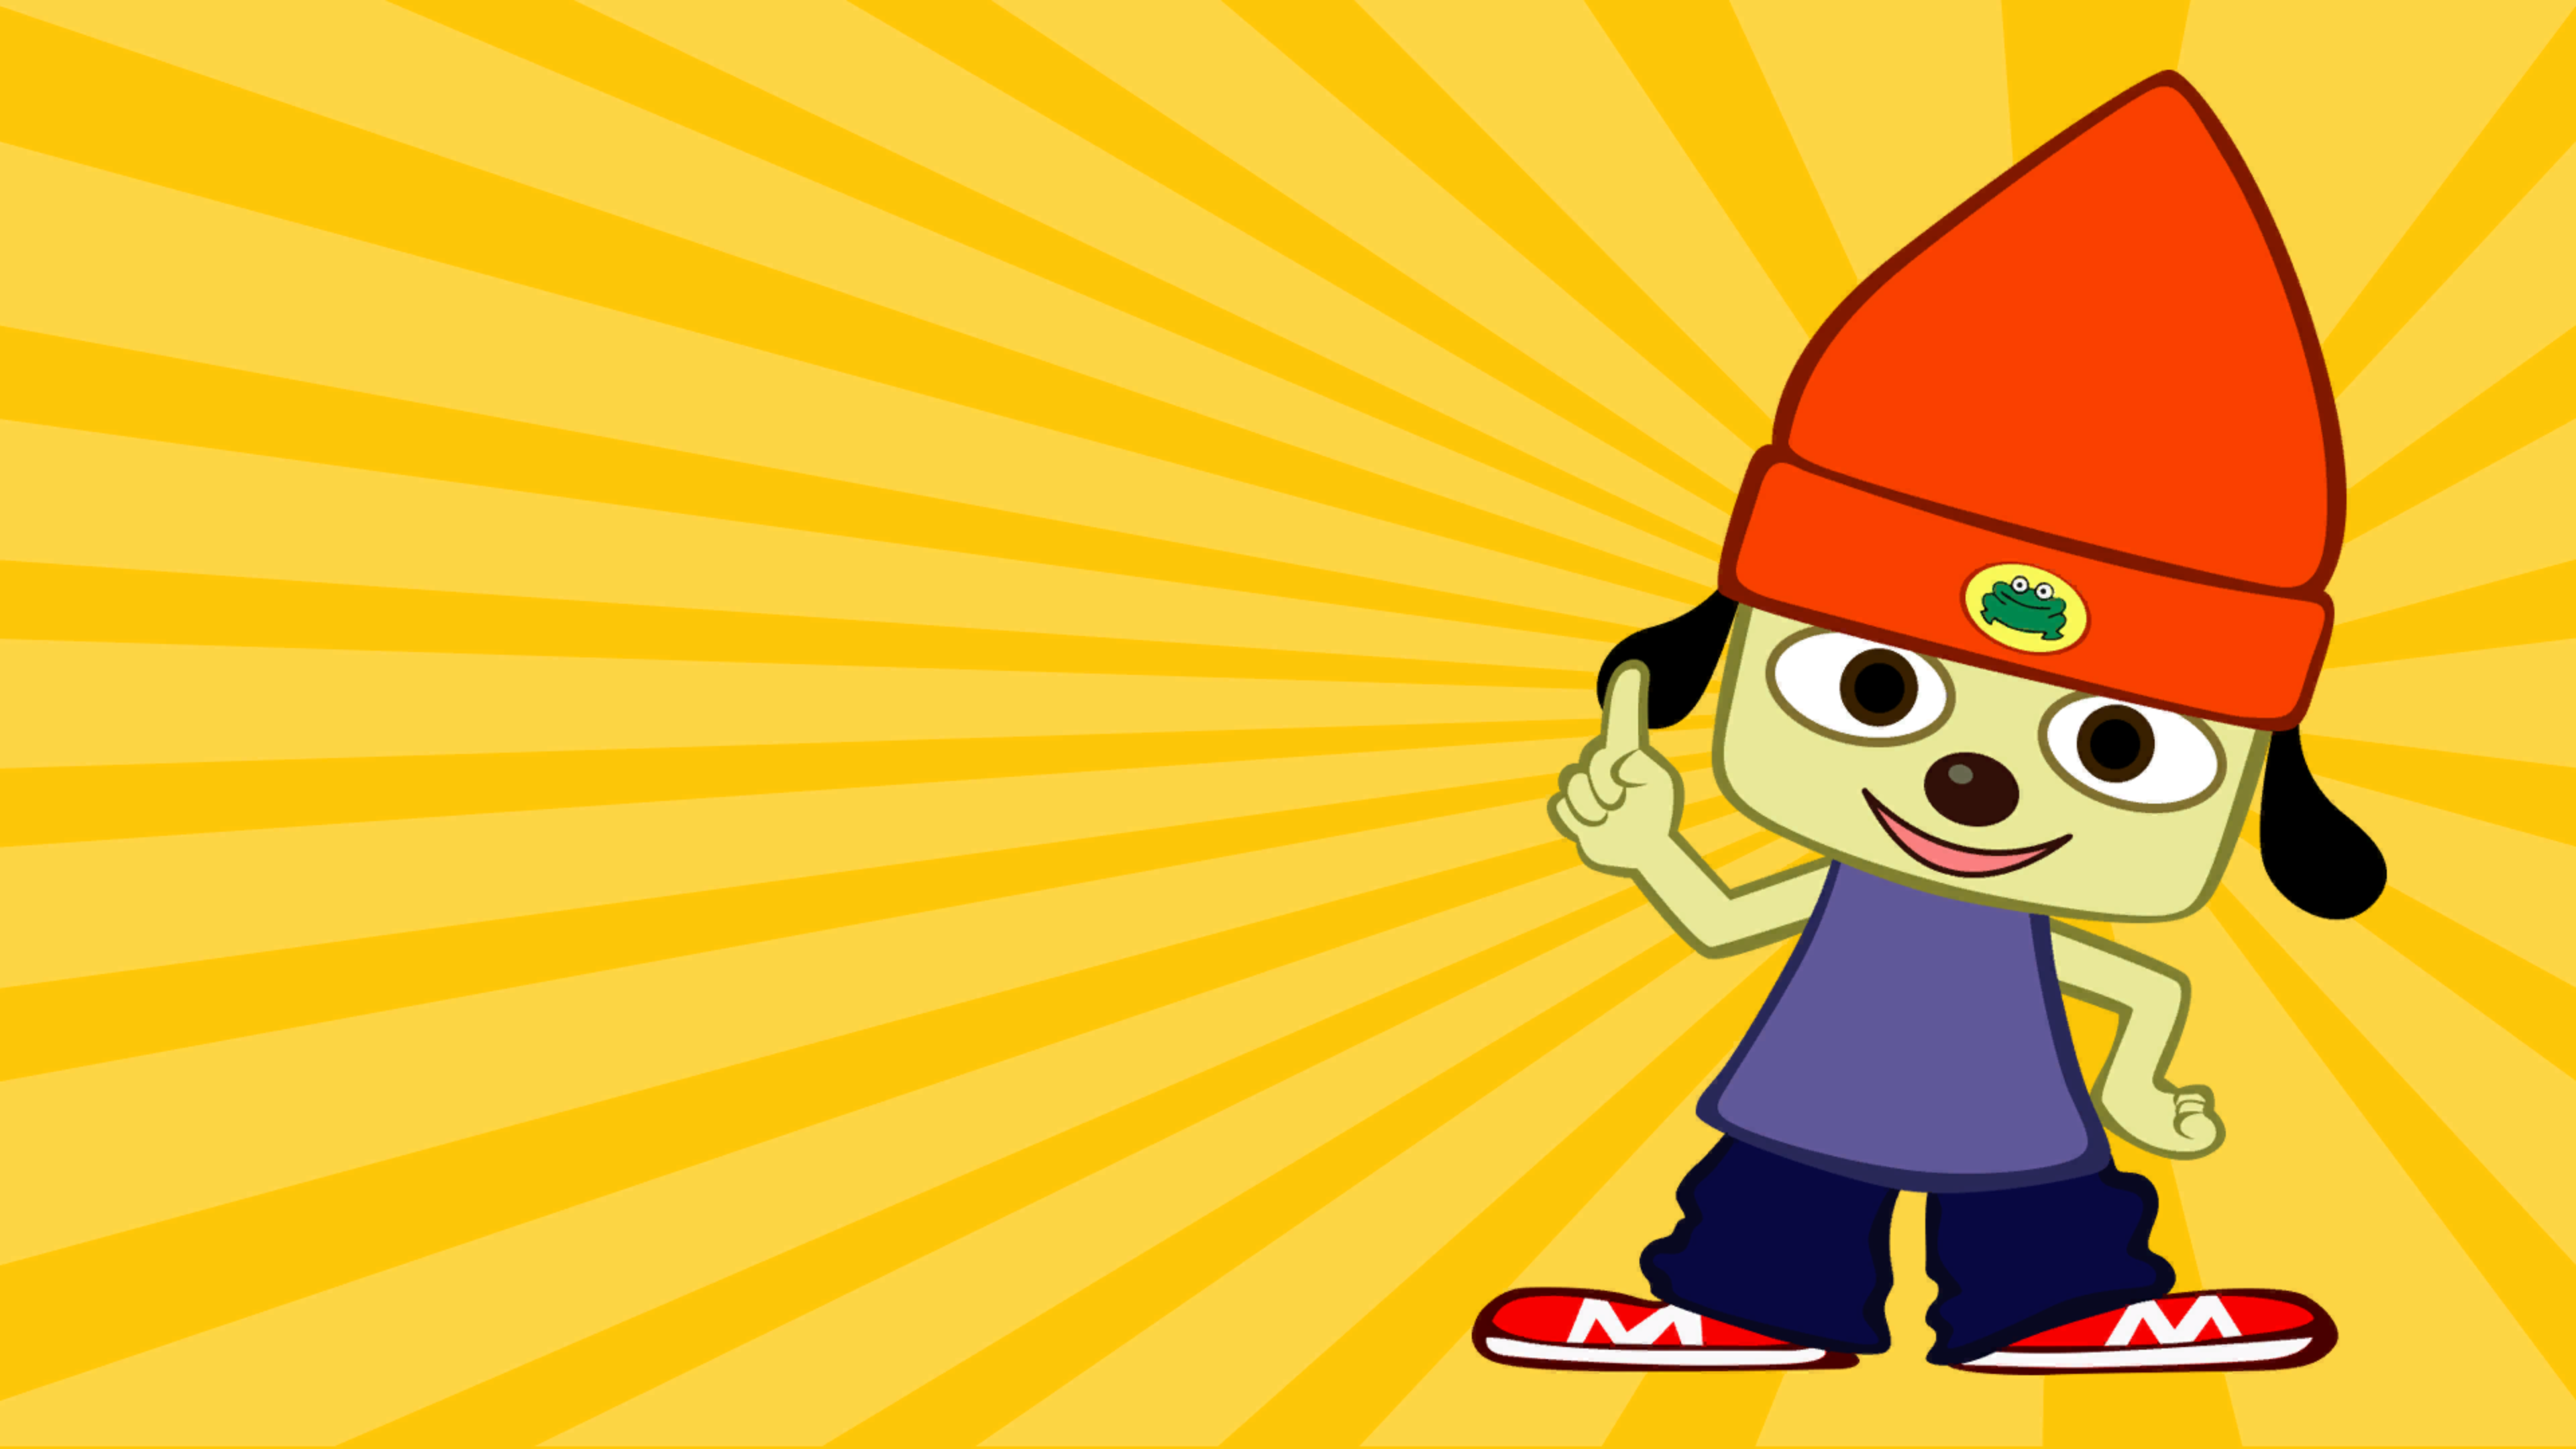 Parappa The Rapper Screenshot Wallpapers 4k And 1080p Playstation4 Ps4 Sony Videogames Playstation Game Japan Graphic Design Rapper Character Design